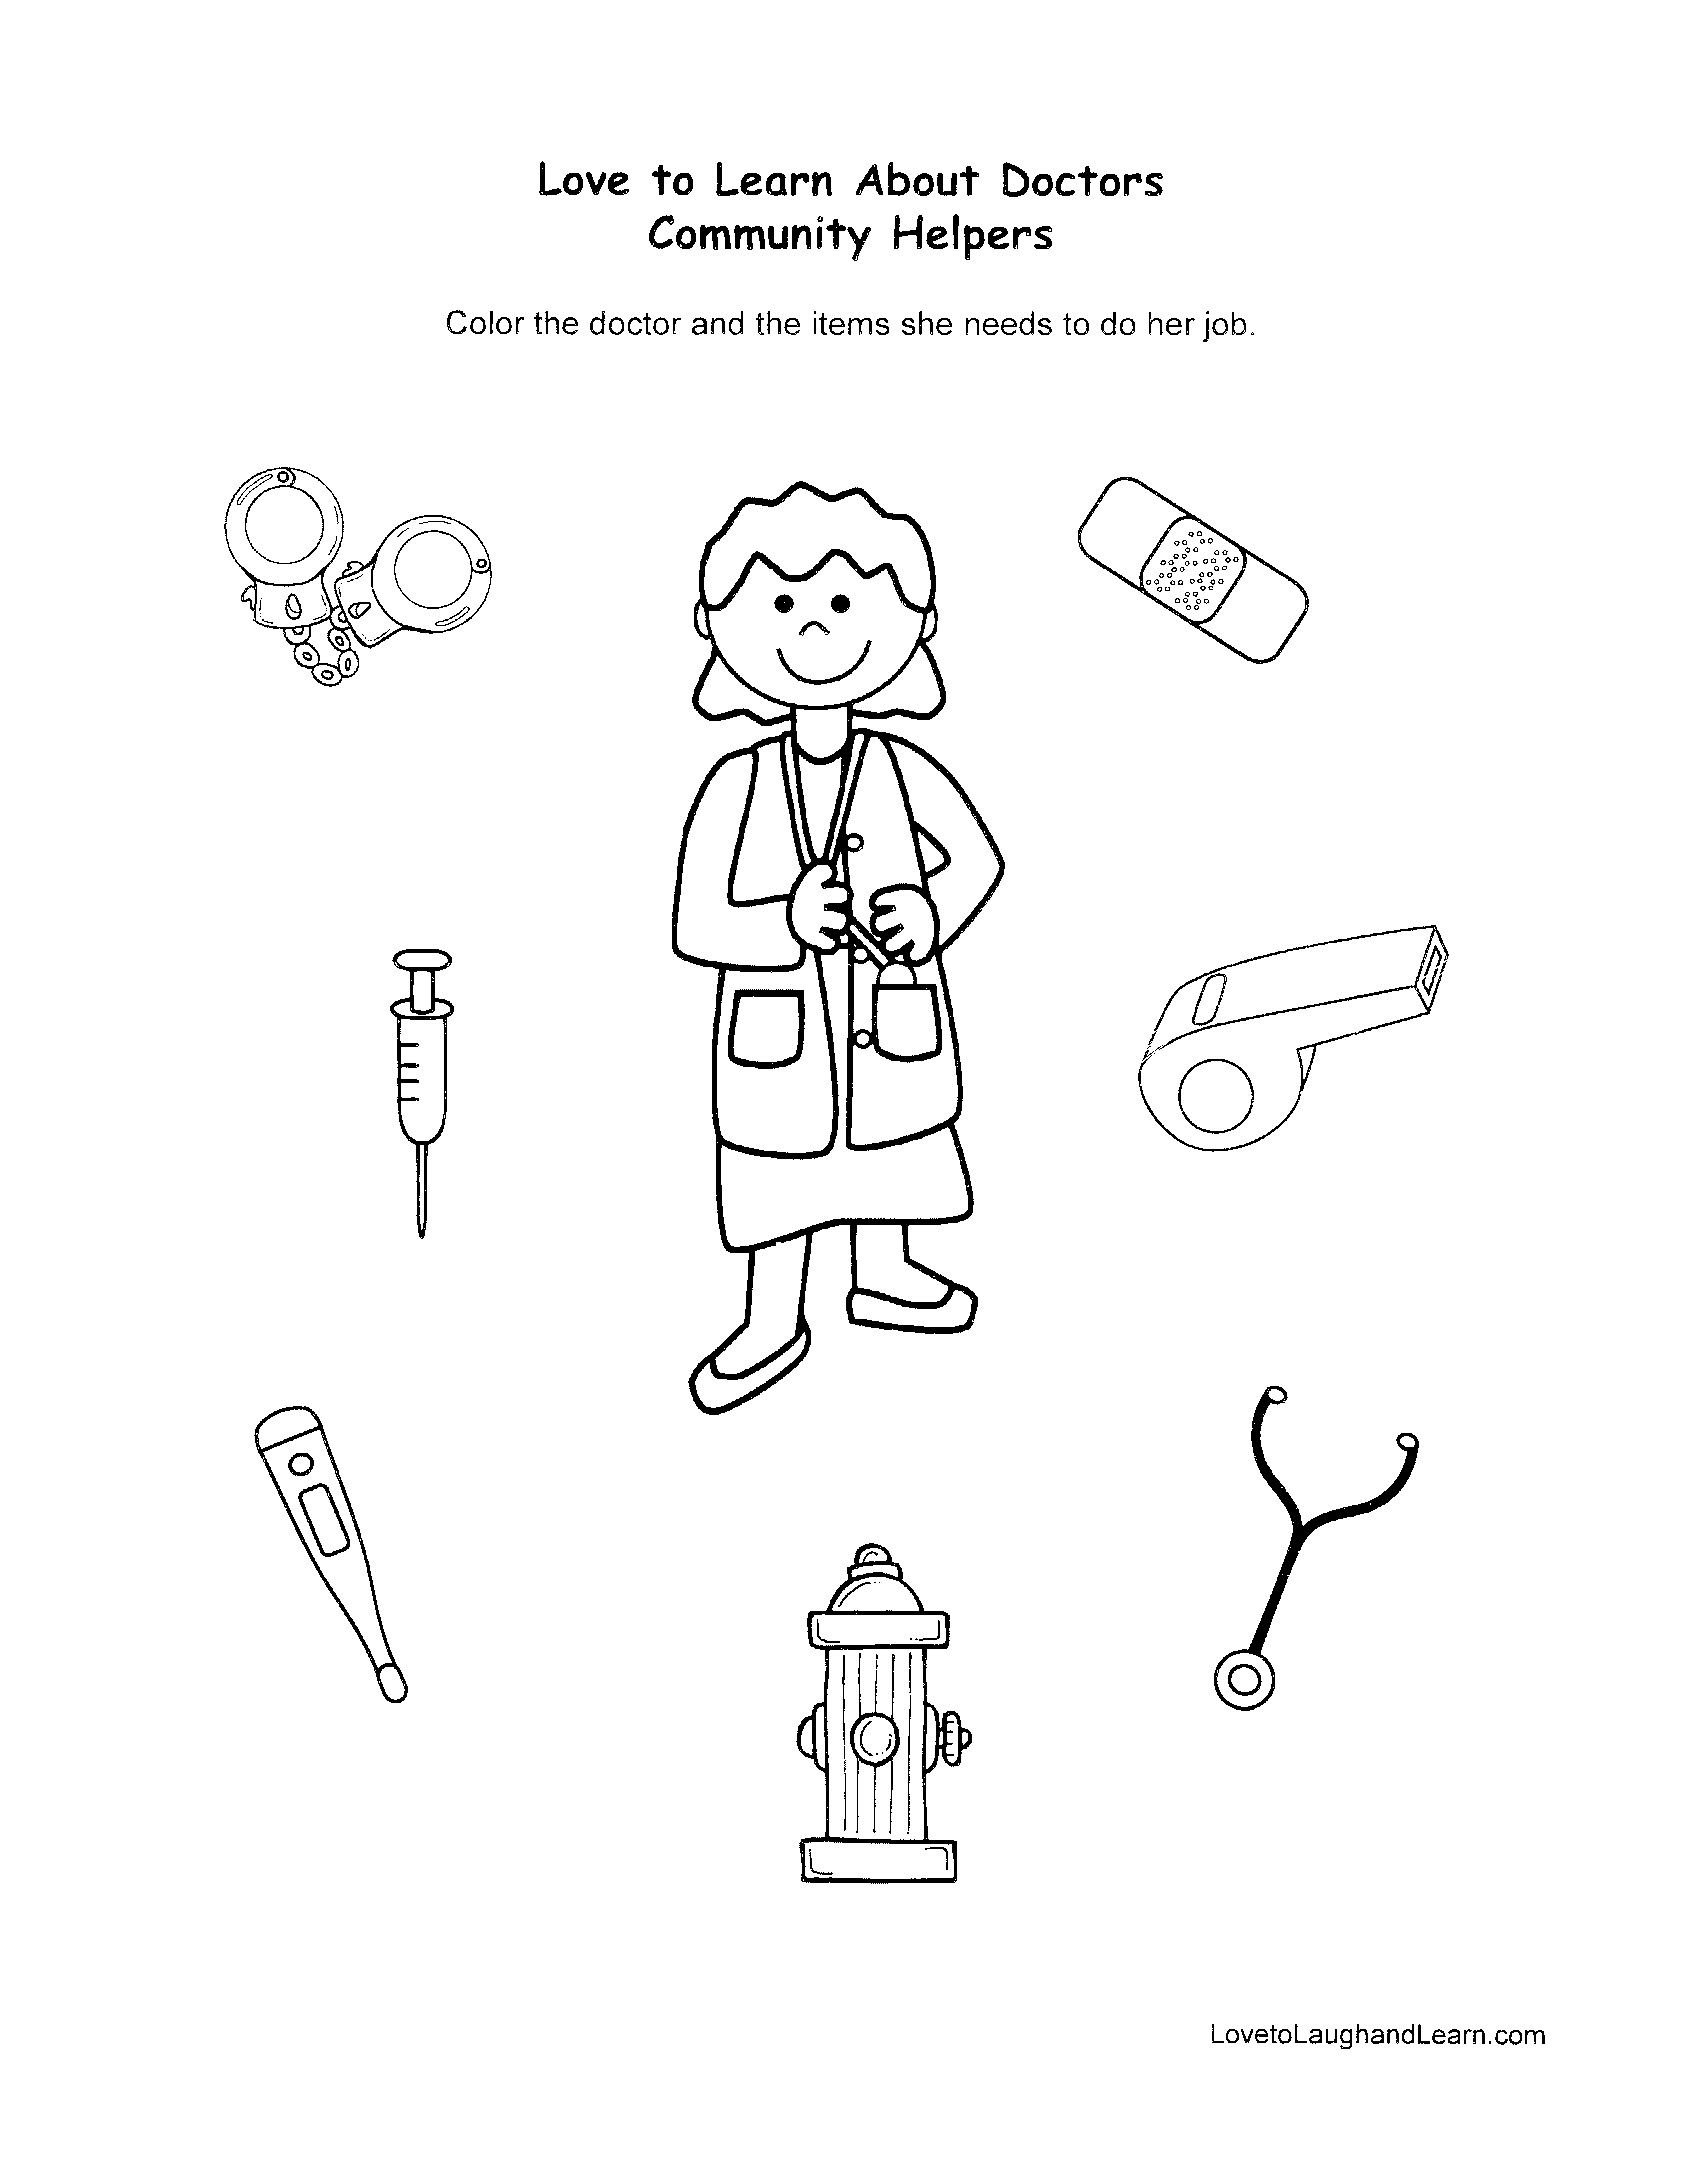 Community Helpers Doctor Fun Sheet